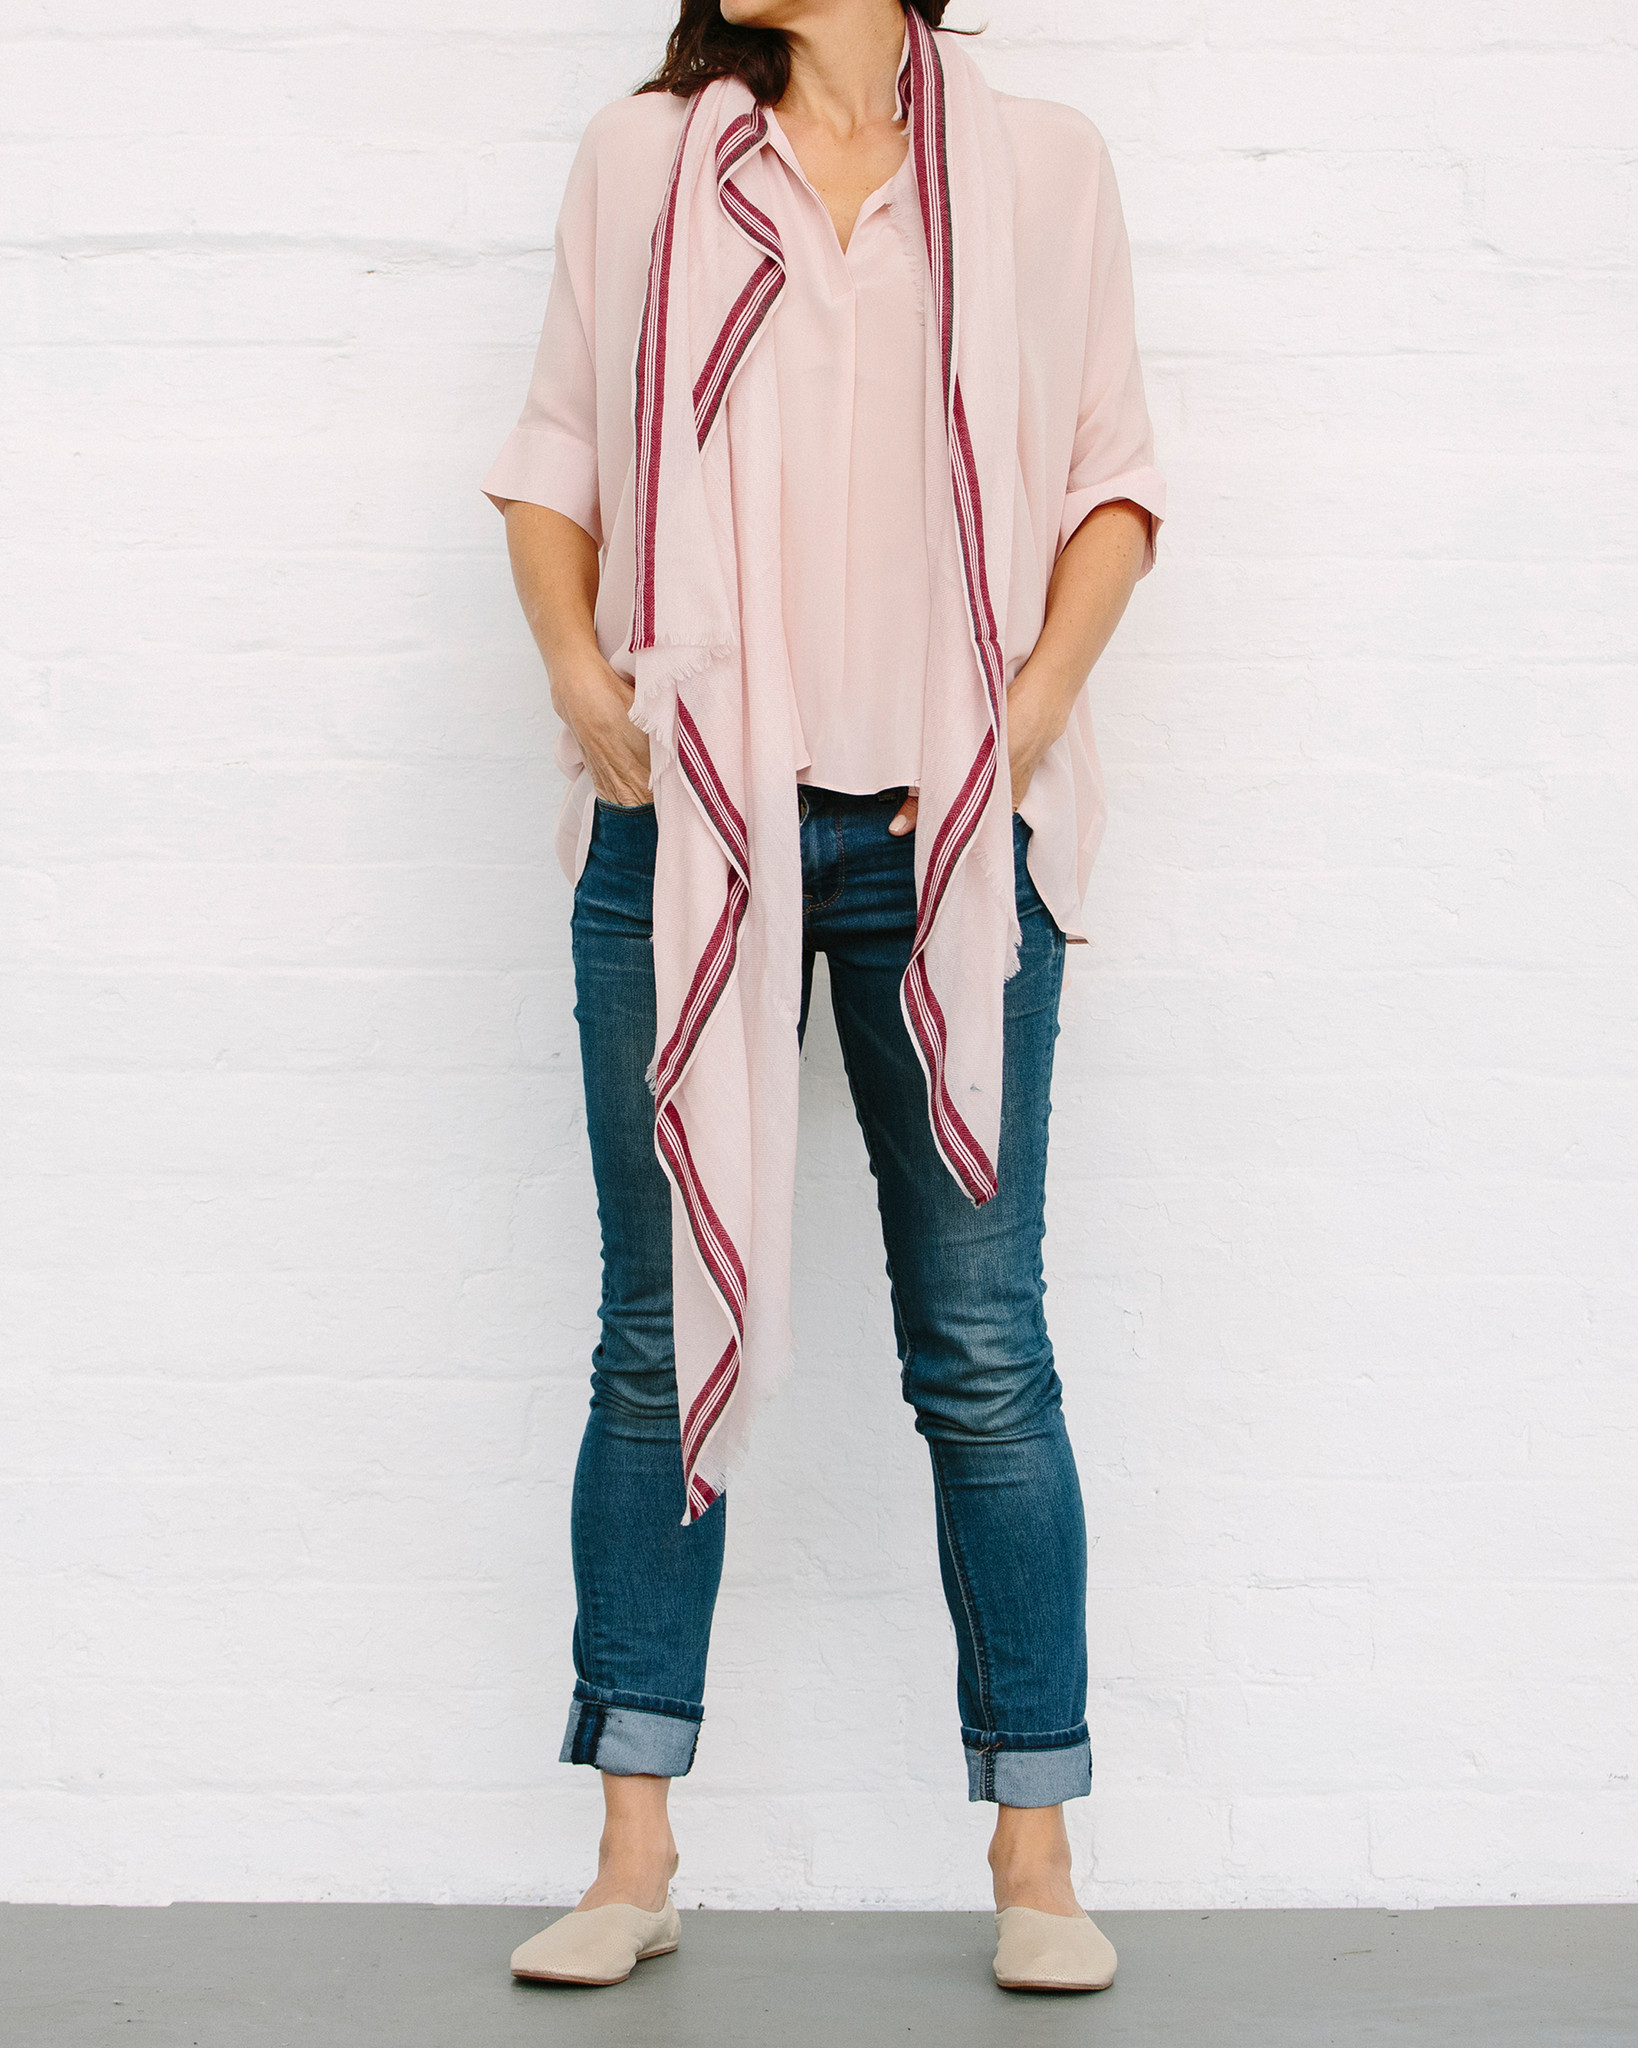 Merino Wool and Silk Scarf $59.00   Available in 4 colours  85% Australian Merino Wool / 15% silk ultra soft and light, yet surprisingly warm luxurious to touch and wear